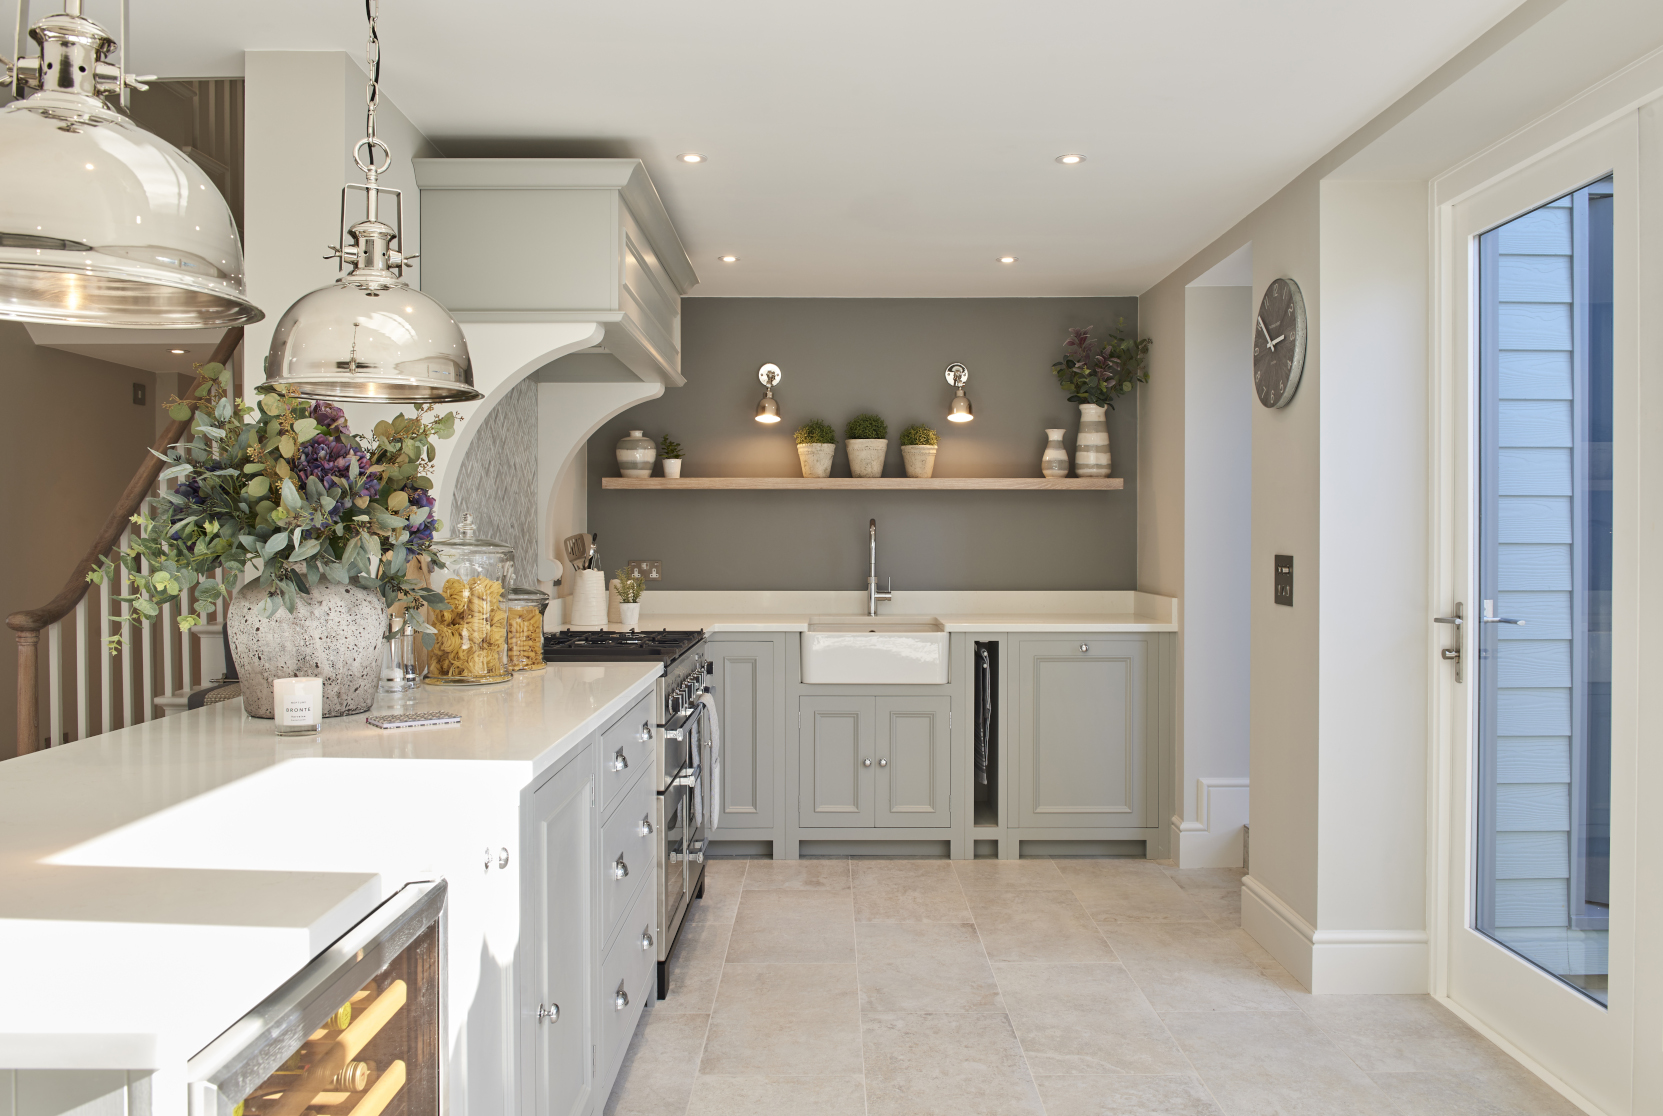 Neptune Chichester Kitchen with pendants - Interior design